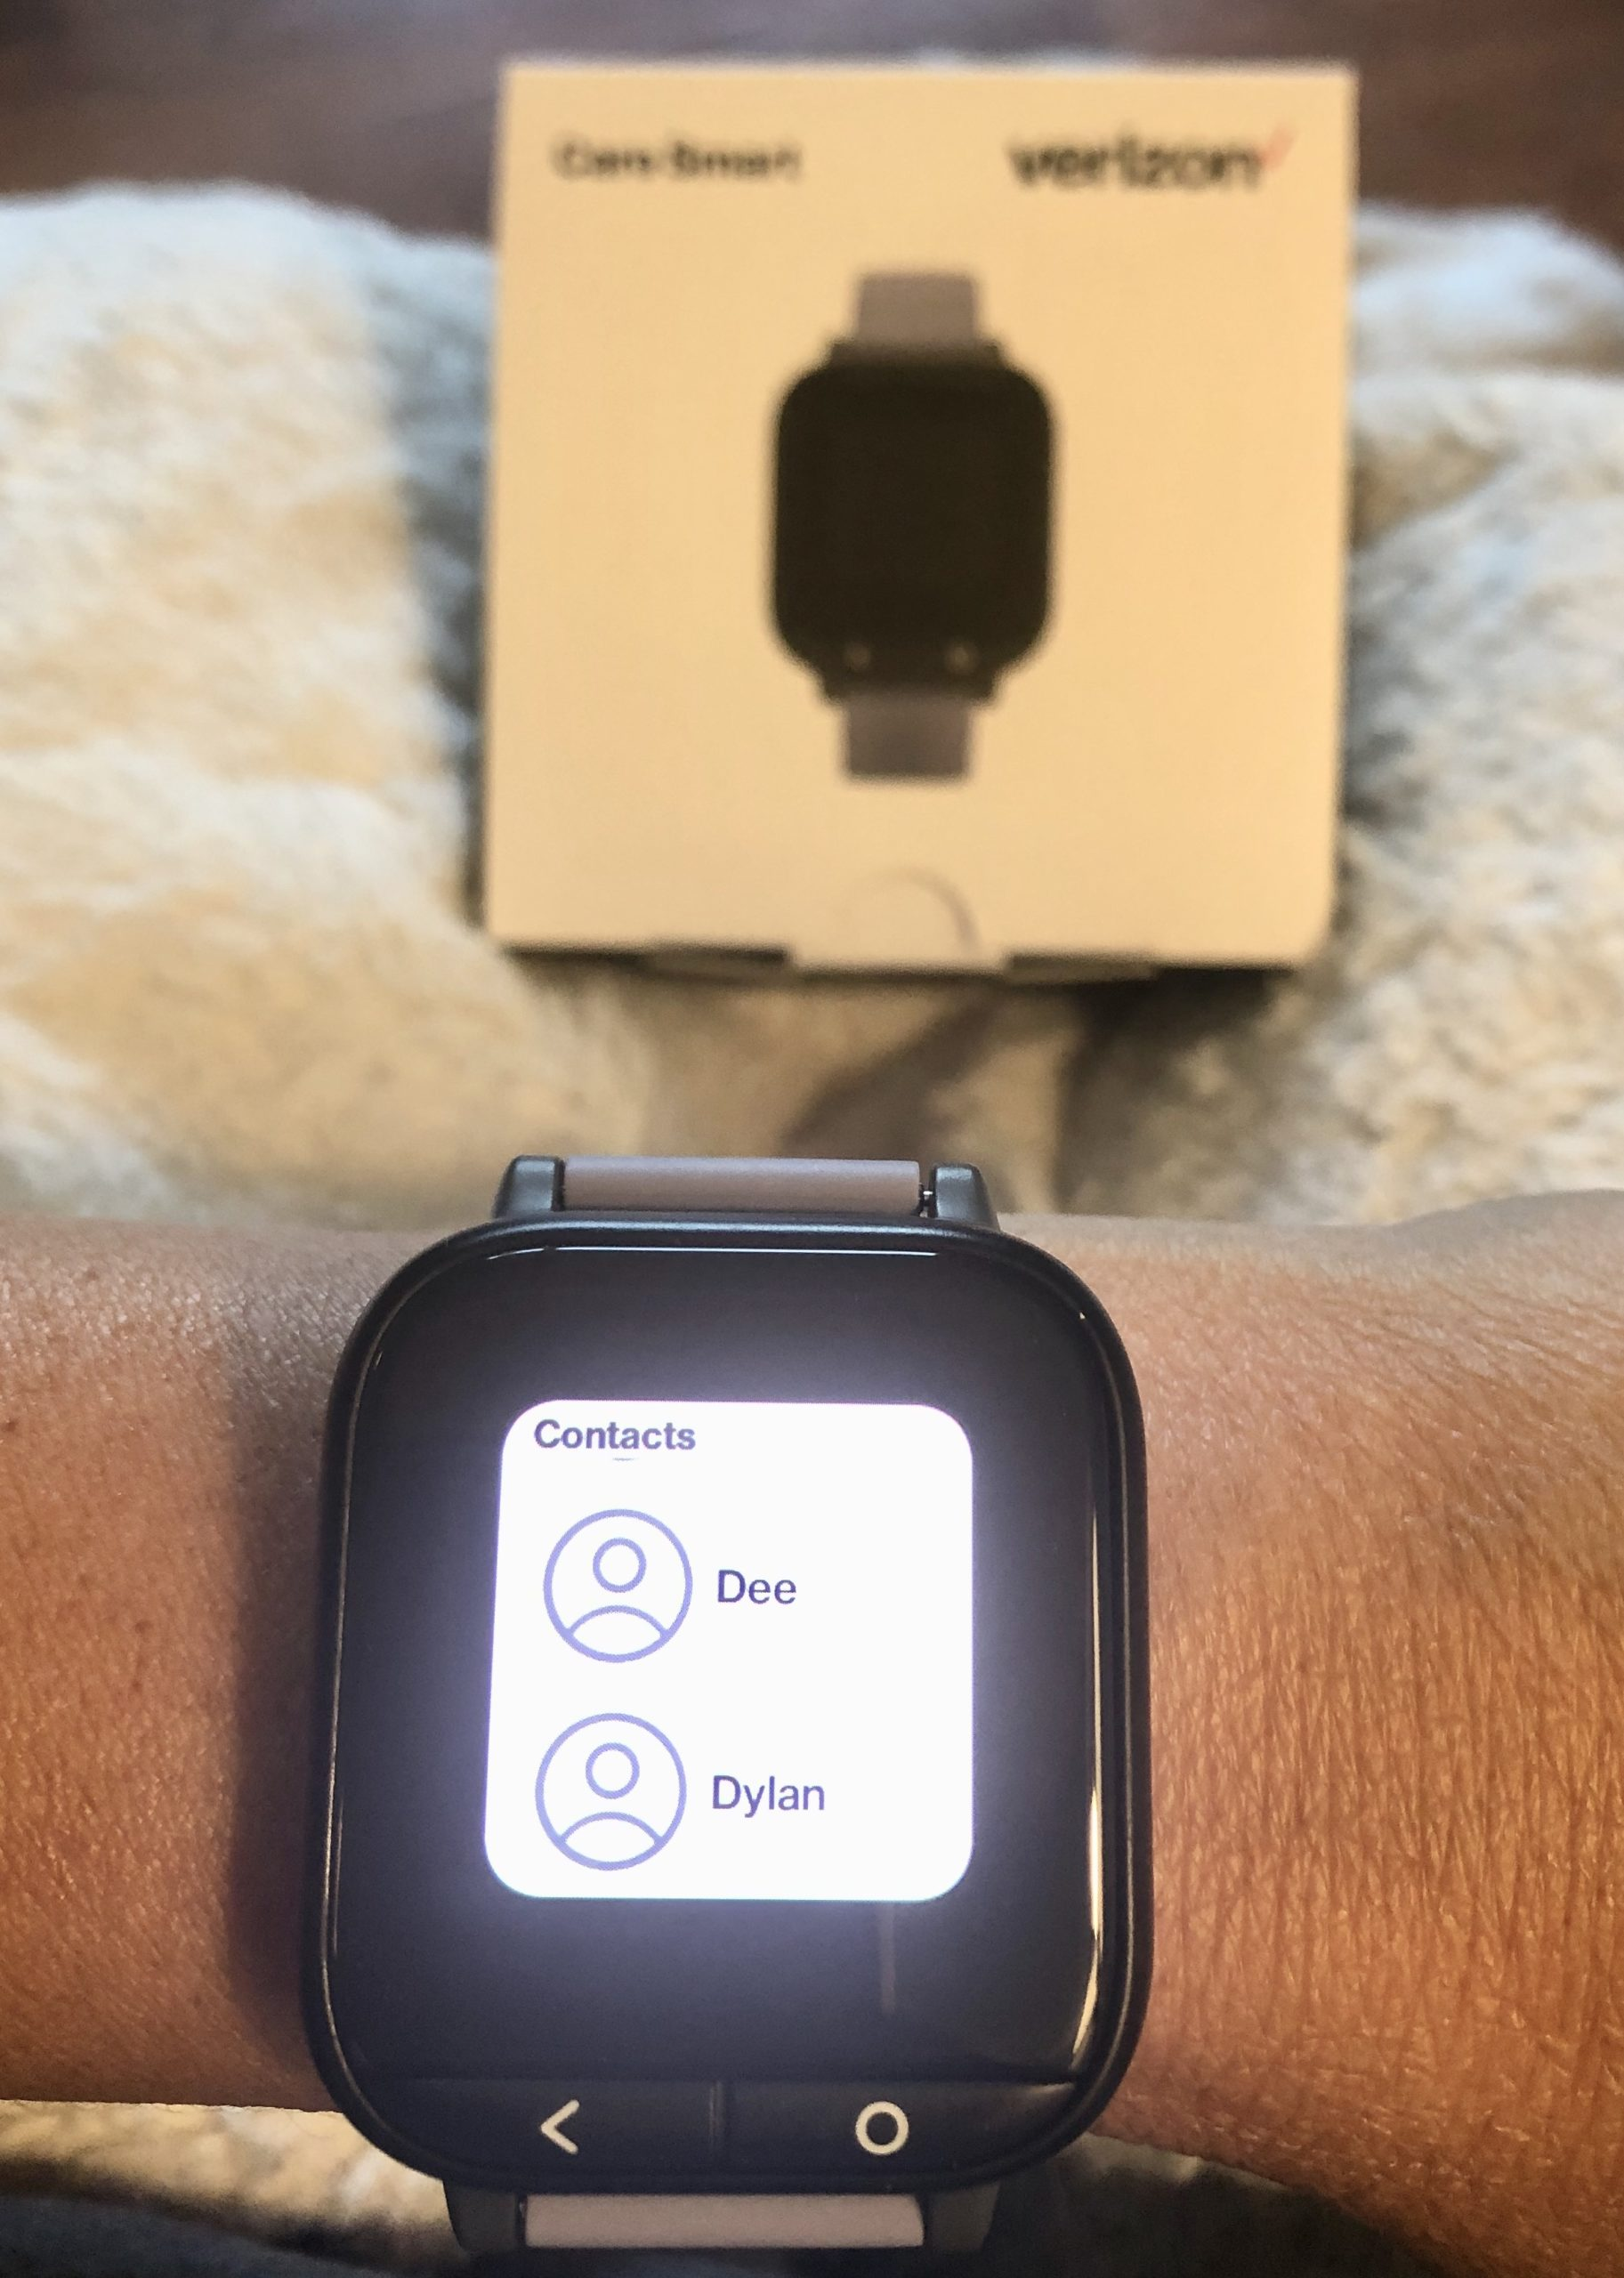 Care Smartwatch phone numbers